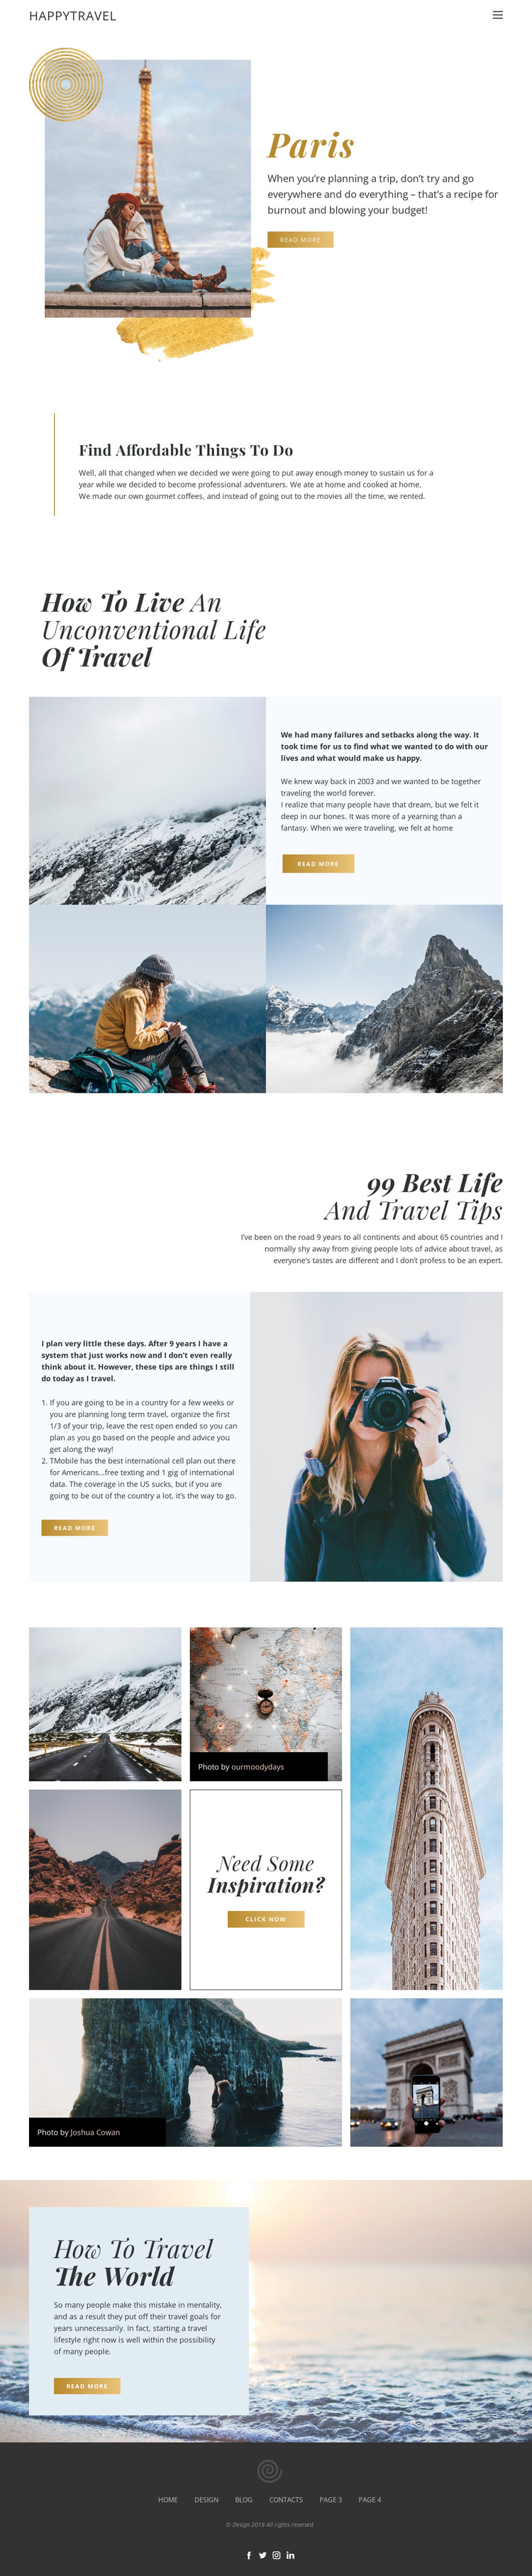 Travel Live HTML5 Template